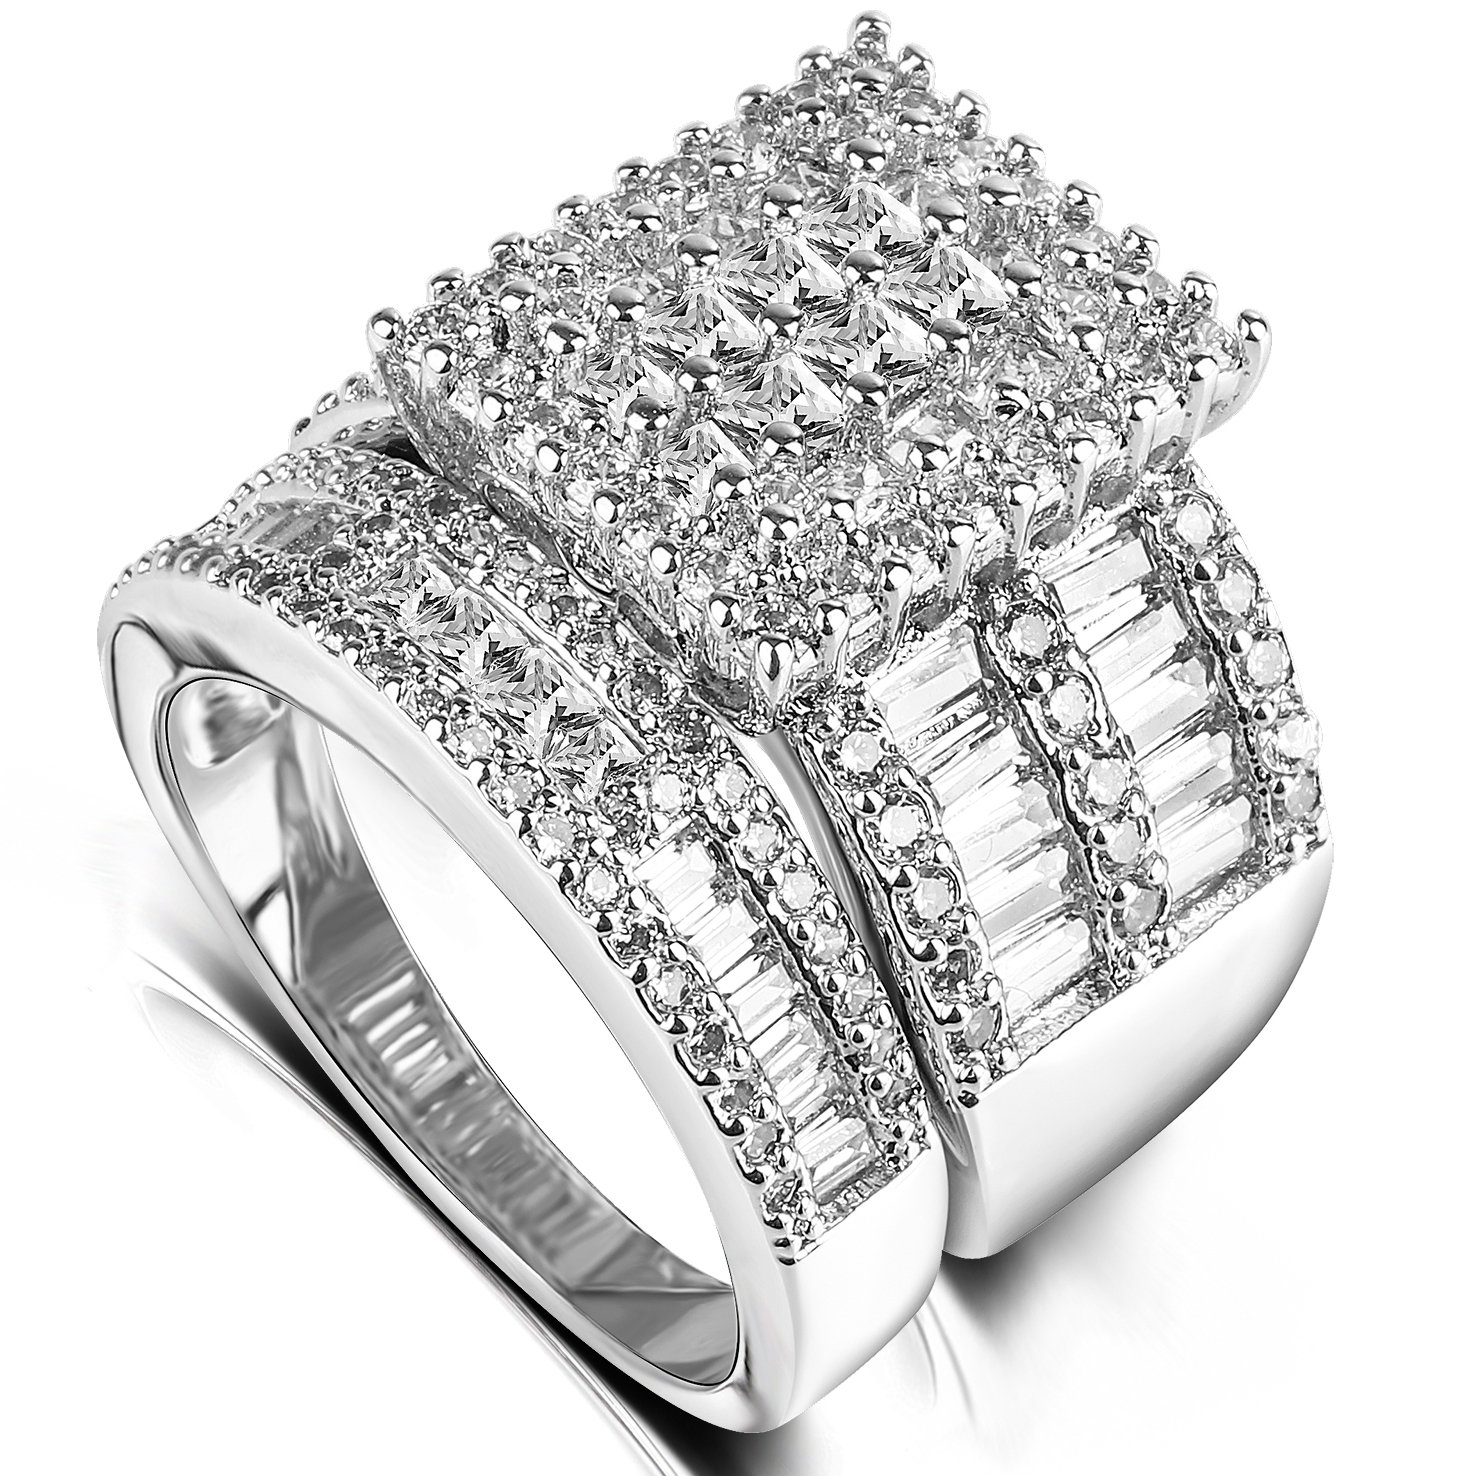 Square CZ 2 Pieces Bridal Sets - Eternity Band Cluster Setting Cubic Zirconia Big Rich Promise Rings for Women (11)